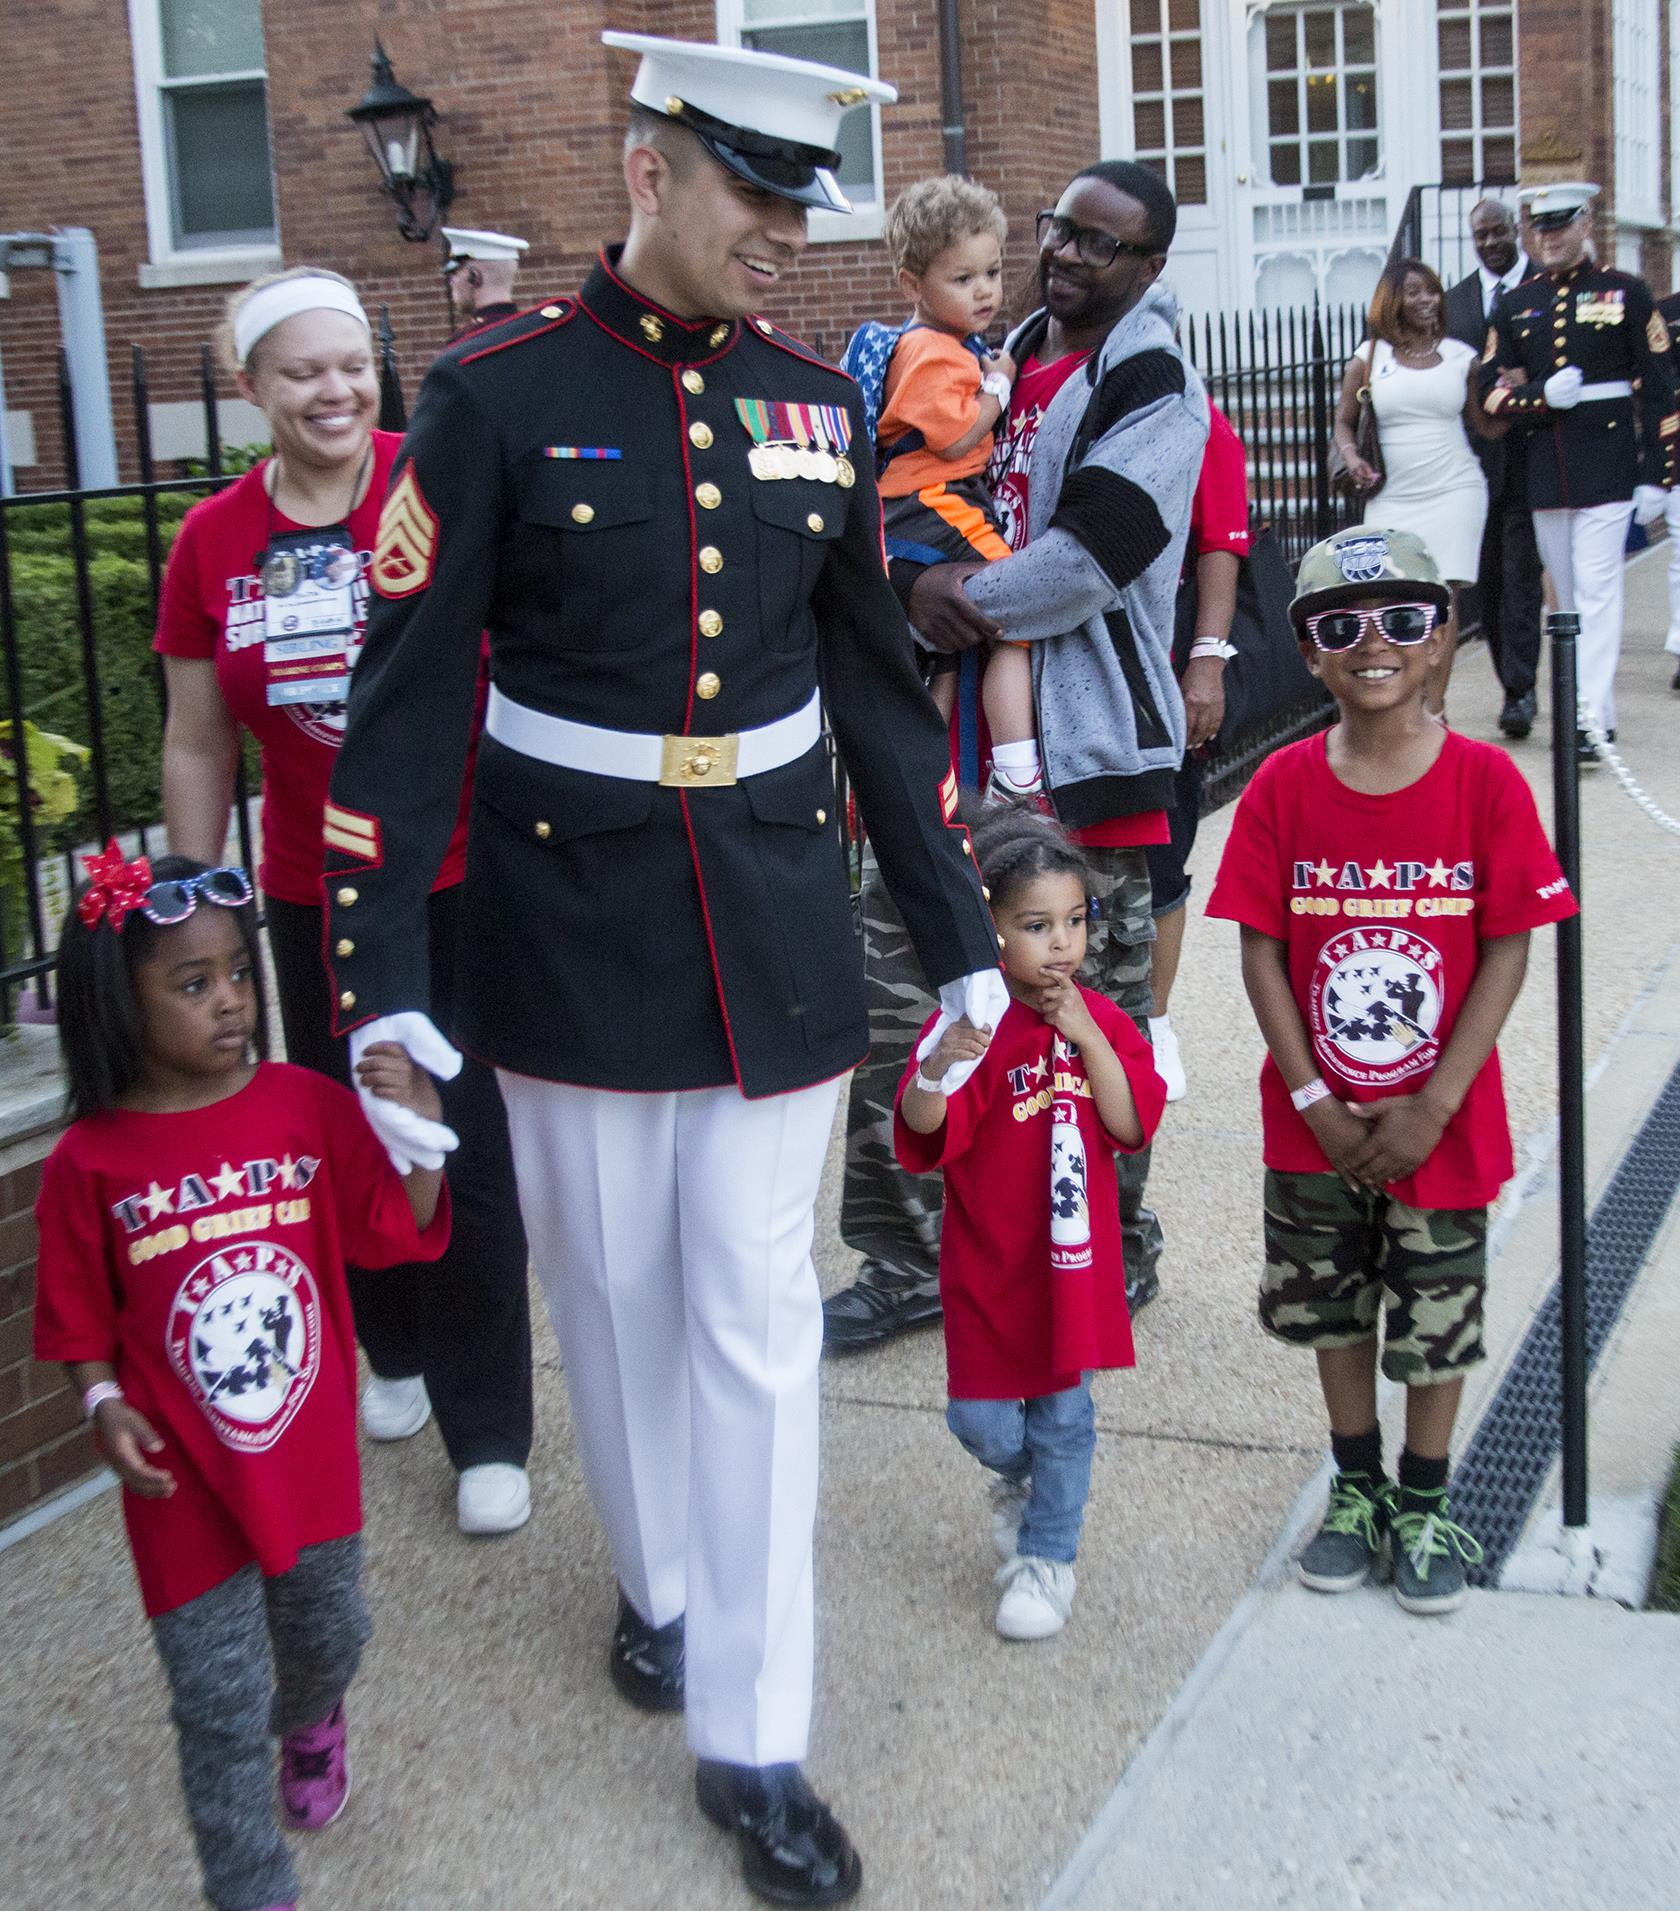 Staff Sgt Jose A Guerra Parade Host Escorts Families To Their Seats